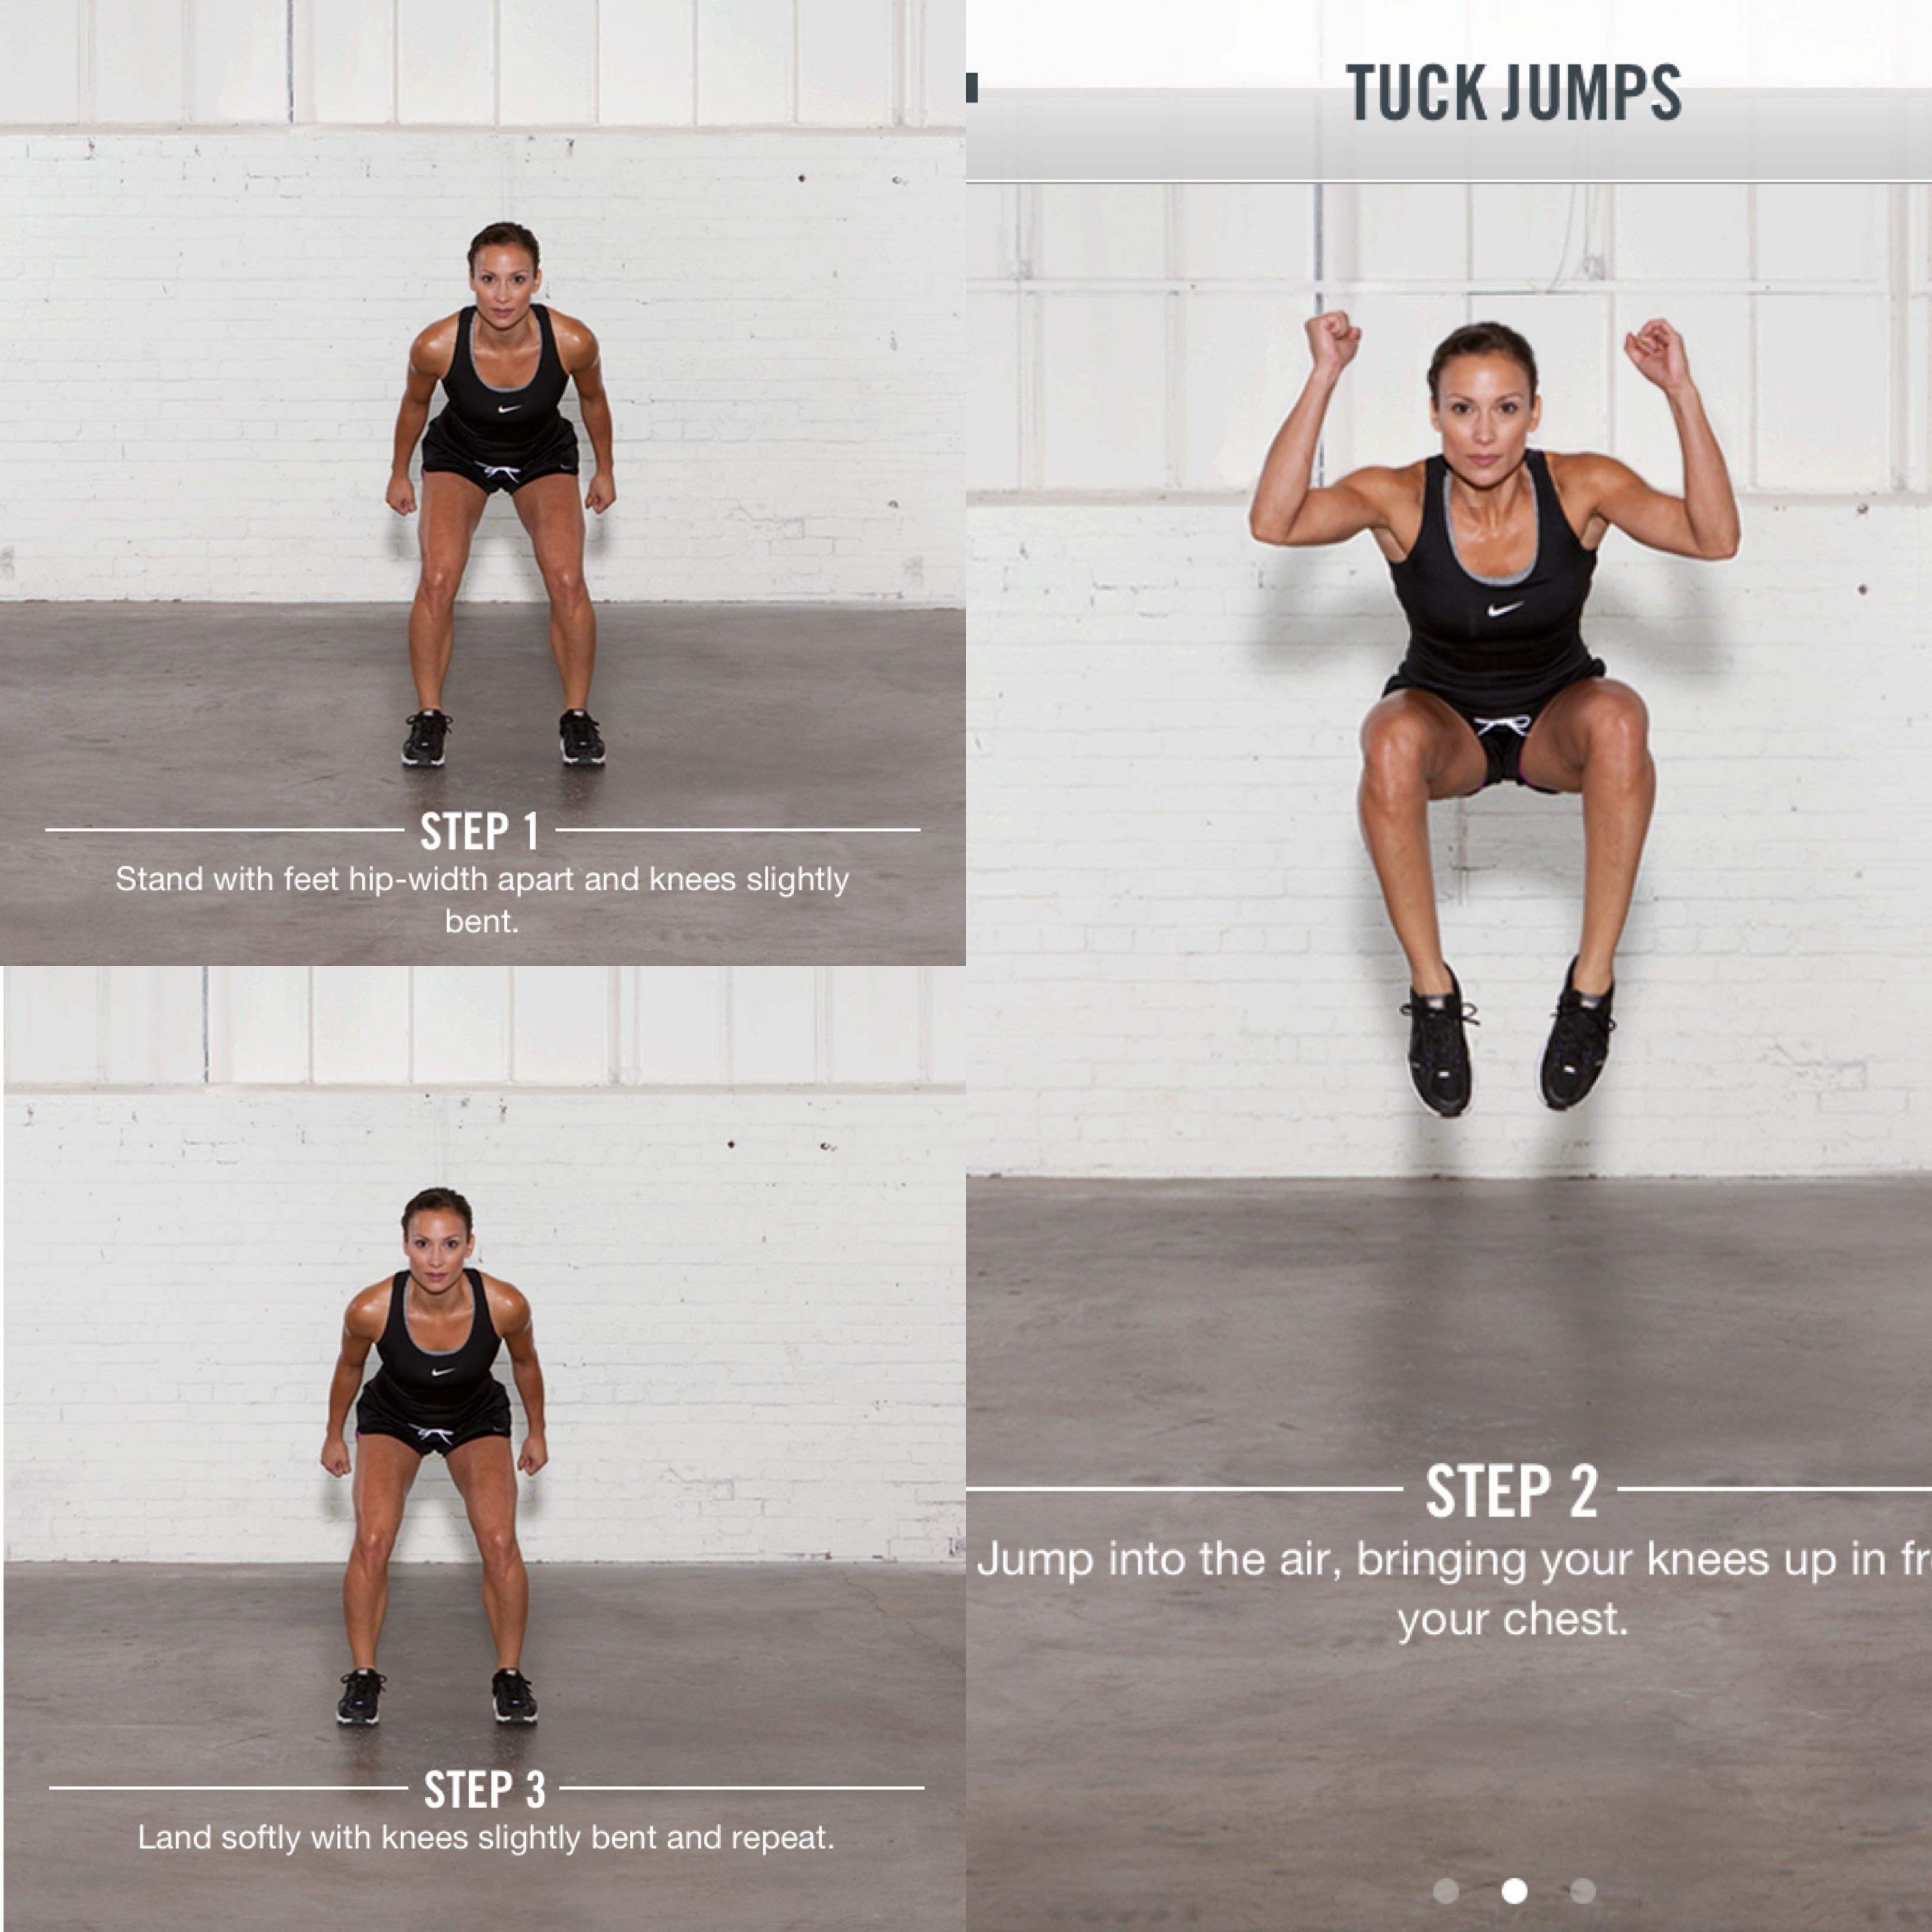 Nike Training Club Workout Tuck Jumps Volleyball Practice Fitness Motivation Inspiration